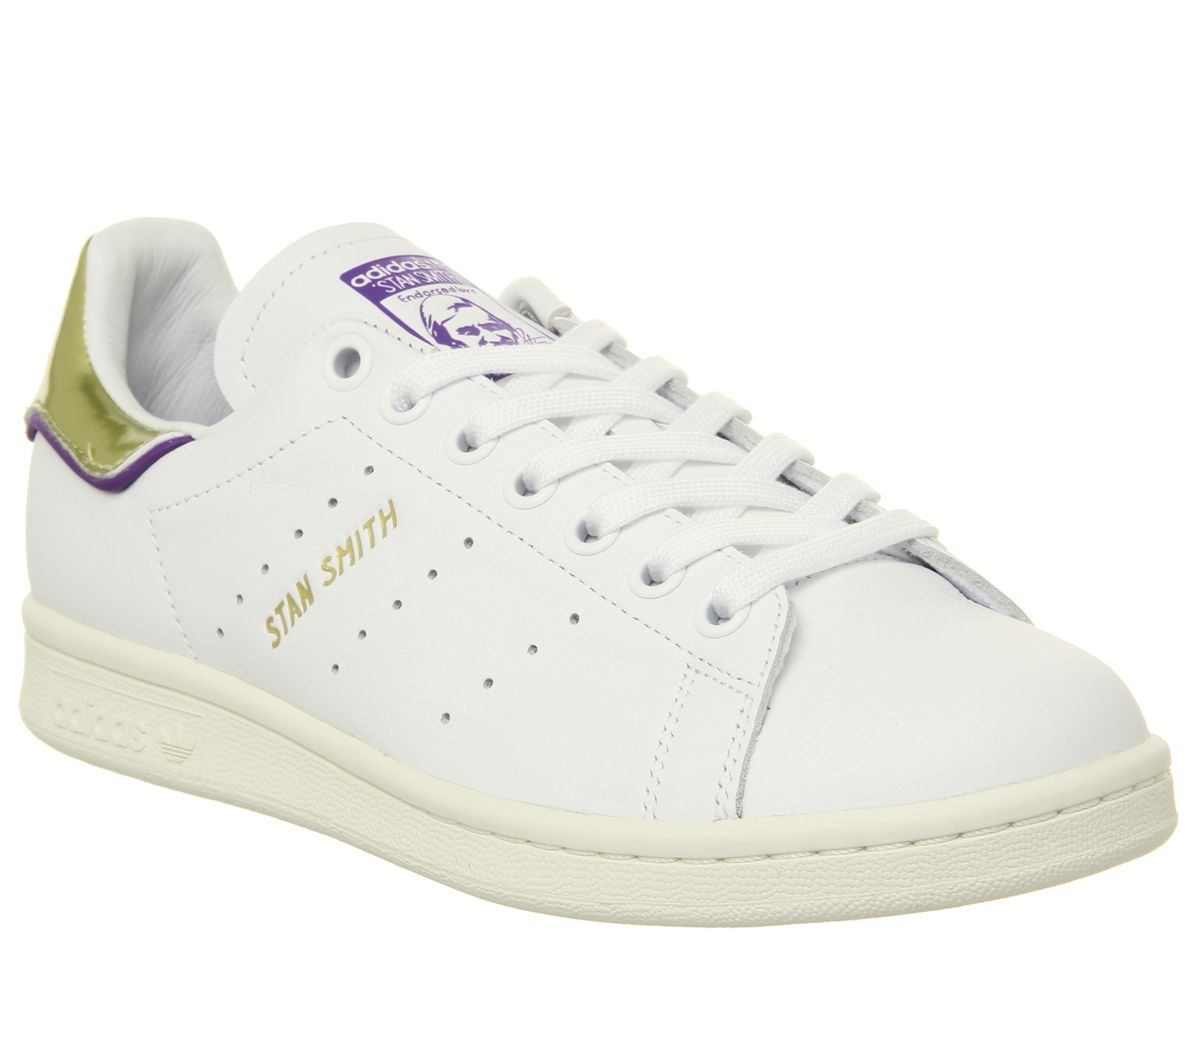 adidas stan smith shoes price philippines